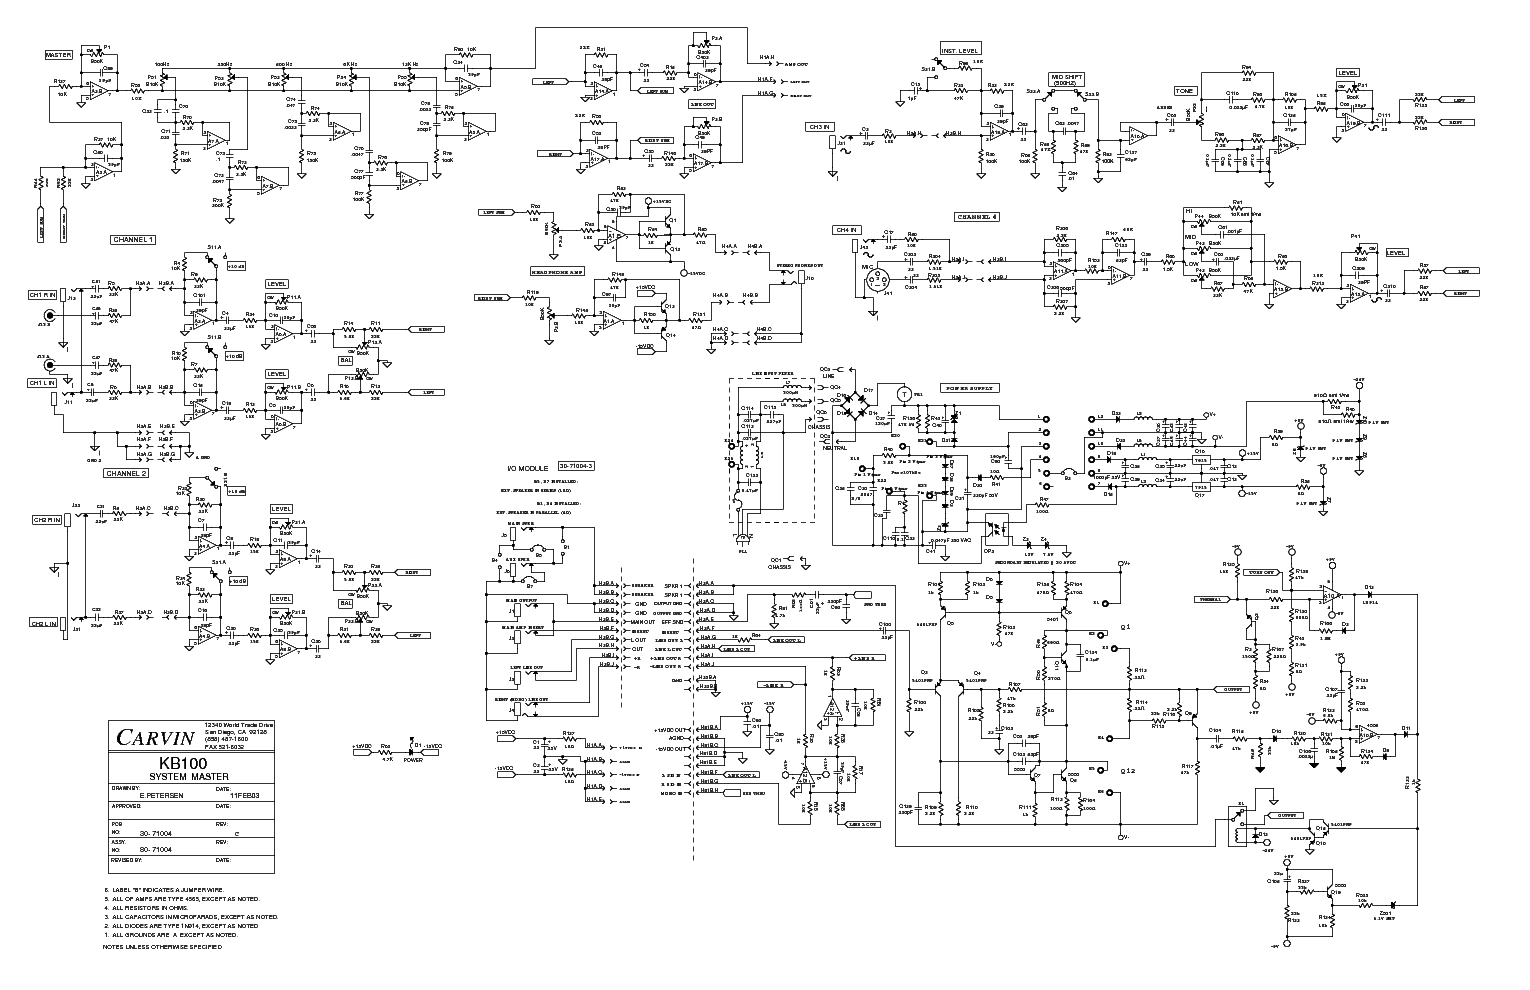 carvin legacy schematic wiring diagram gibson guitar schematics carvin legacy schematic #3